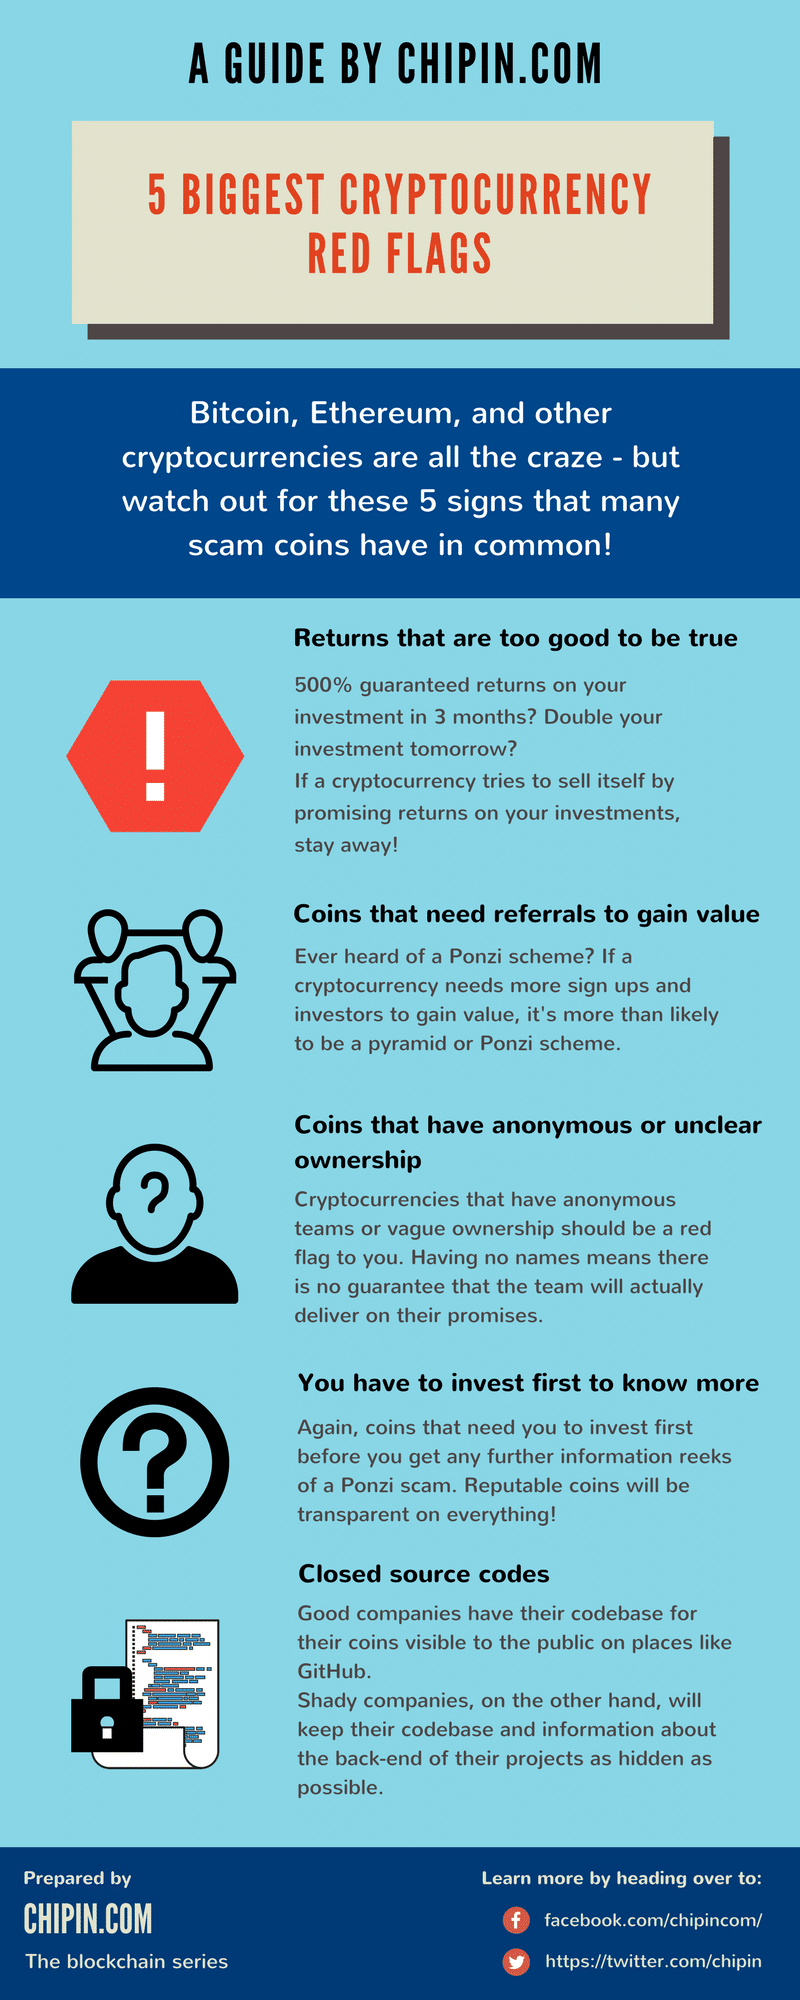 Here are 6 red flags to spot if you are unsure of whether a coin is legit or not.